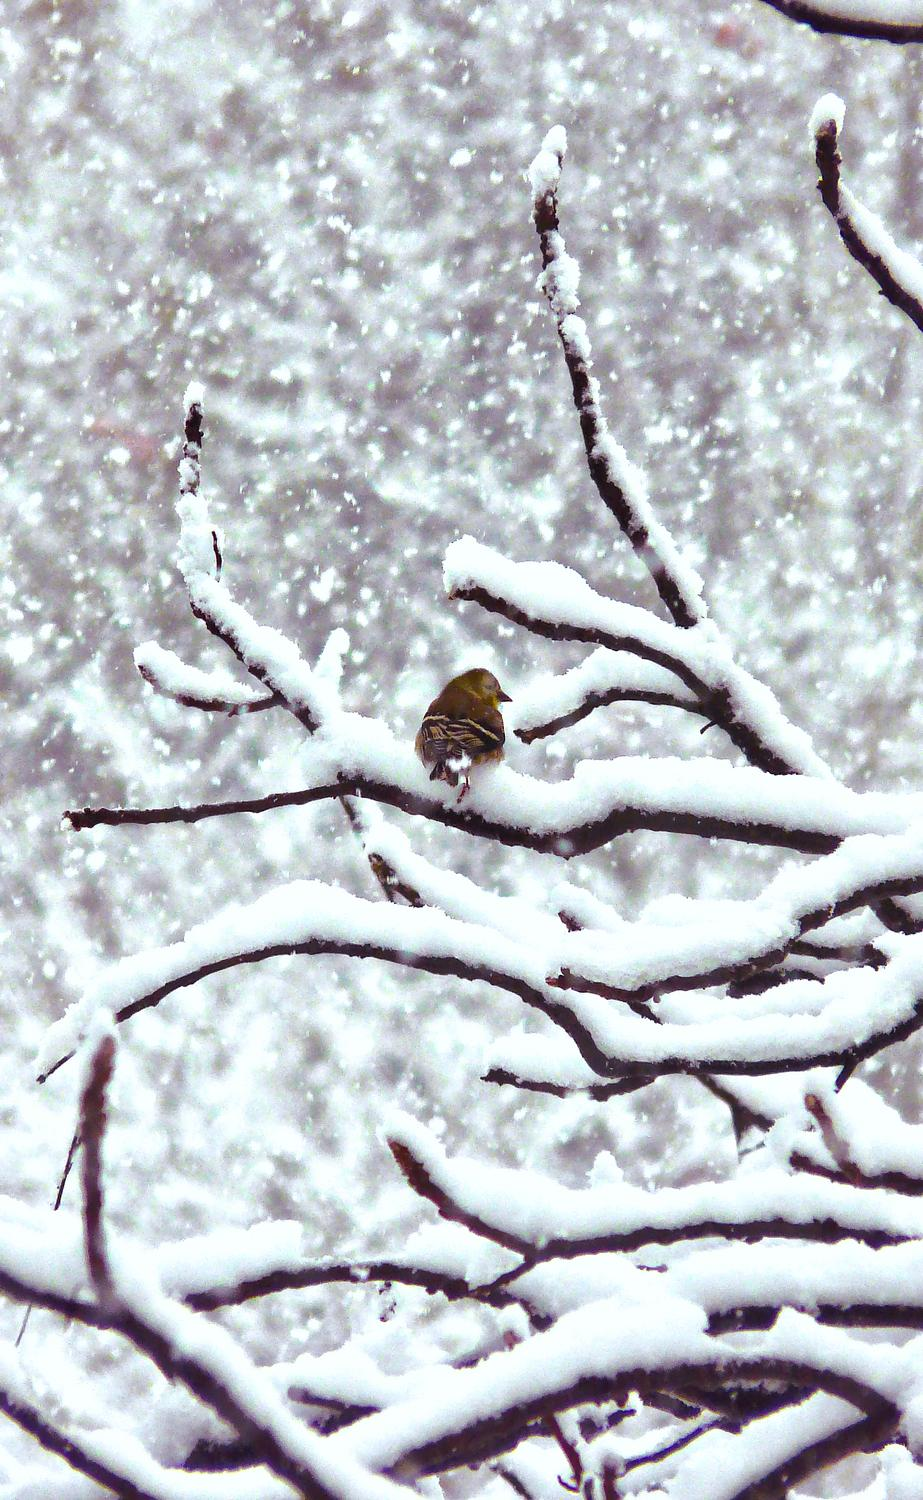 -  Panasonic DMC-FZ18 - Another small bird in a snowy tree. - - art  - photography - by Tony Karp